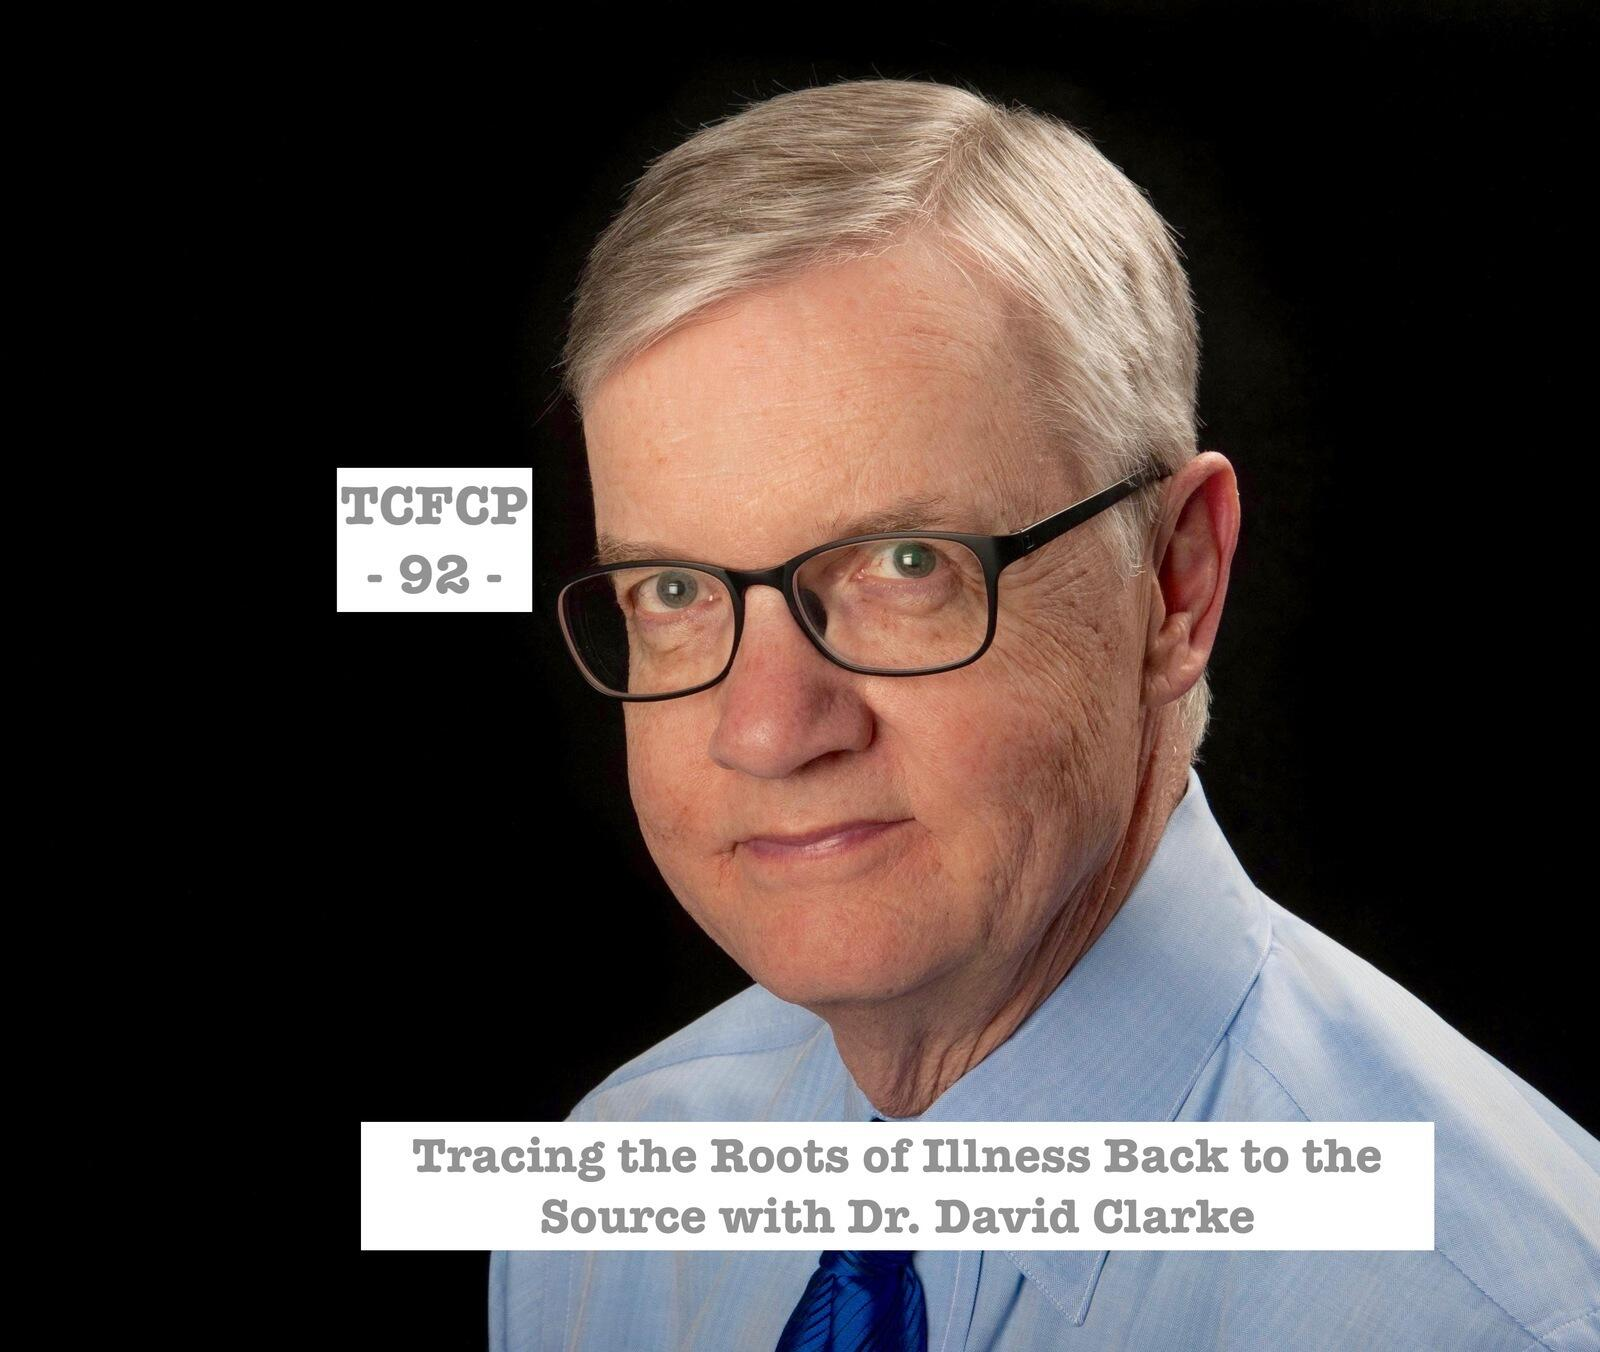 92: Episode 92 - Tracing the Roots of Illness Back to the Source with Dr. David Clarke